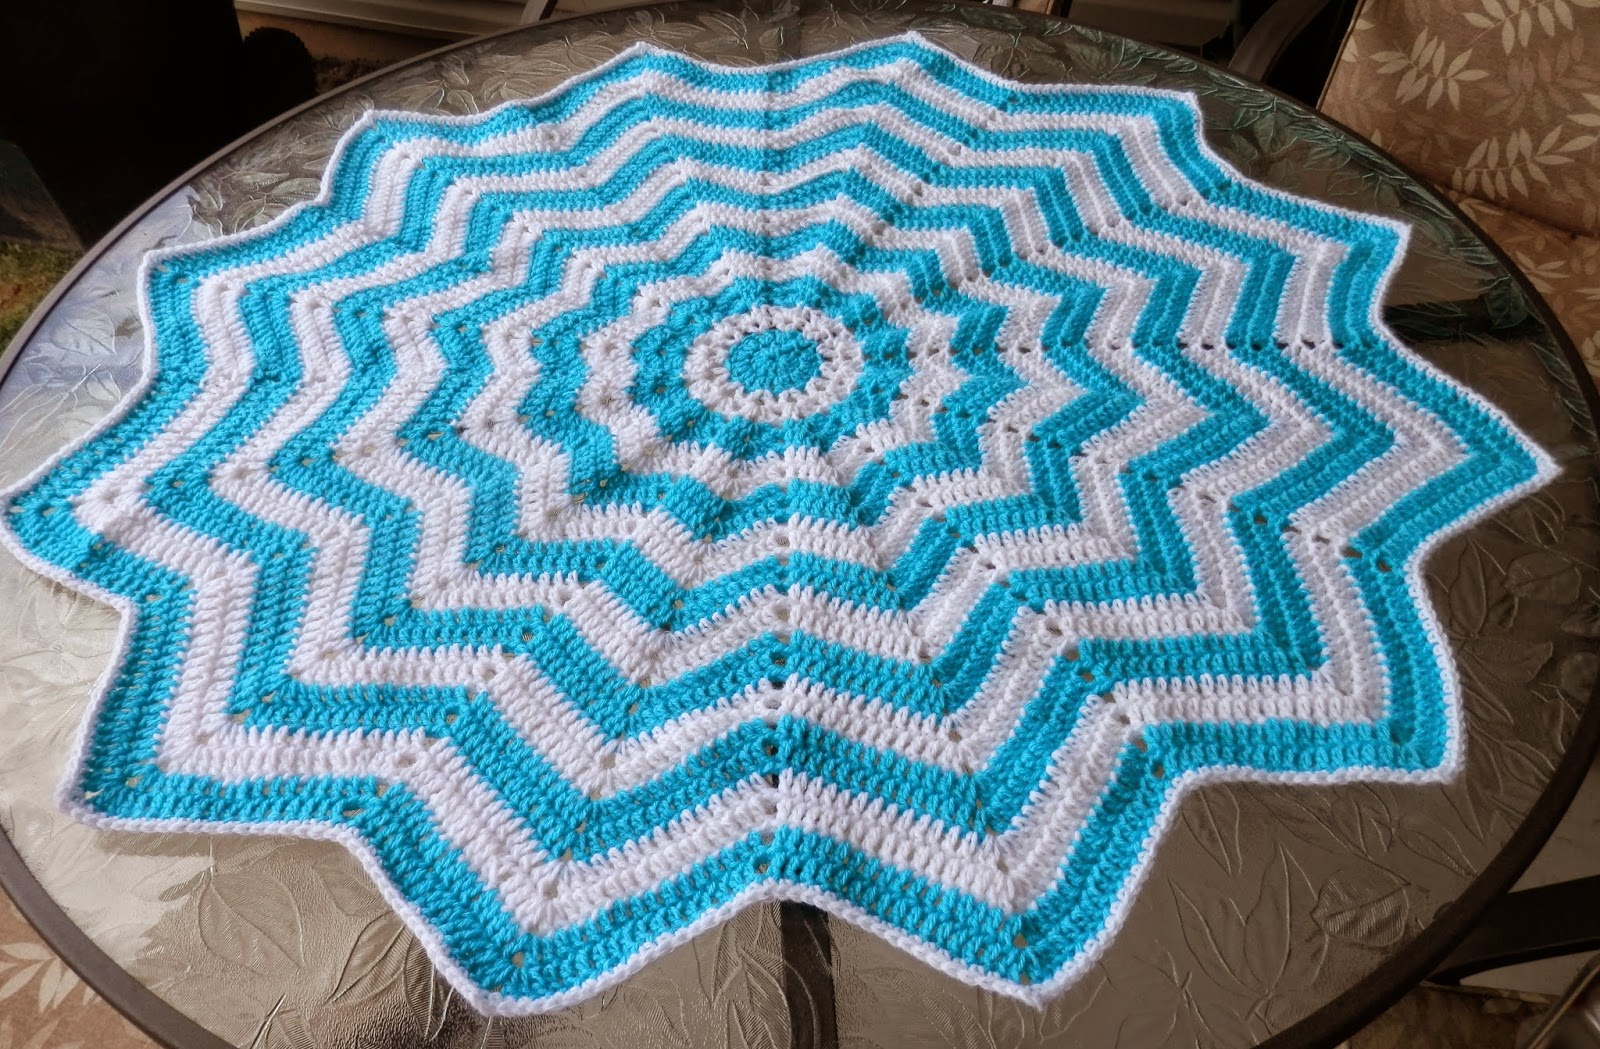 Karens Crocheted Garden Of Colors 12 Point Round Ripple